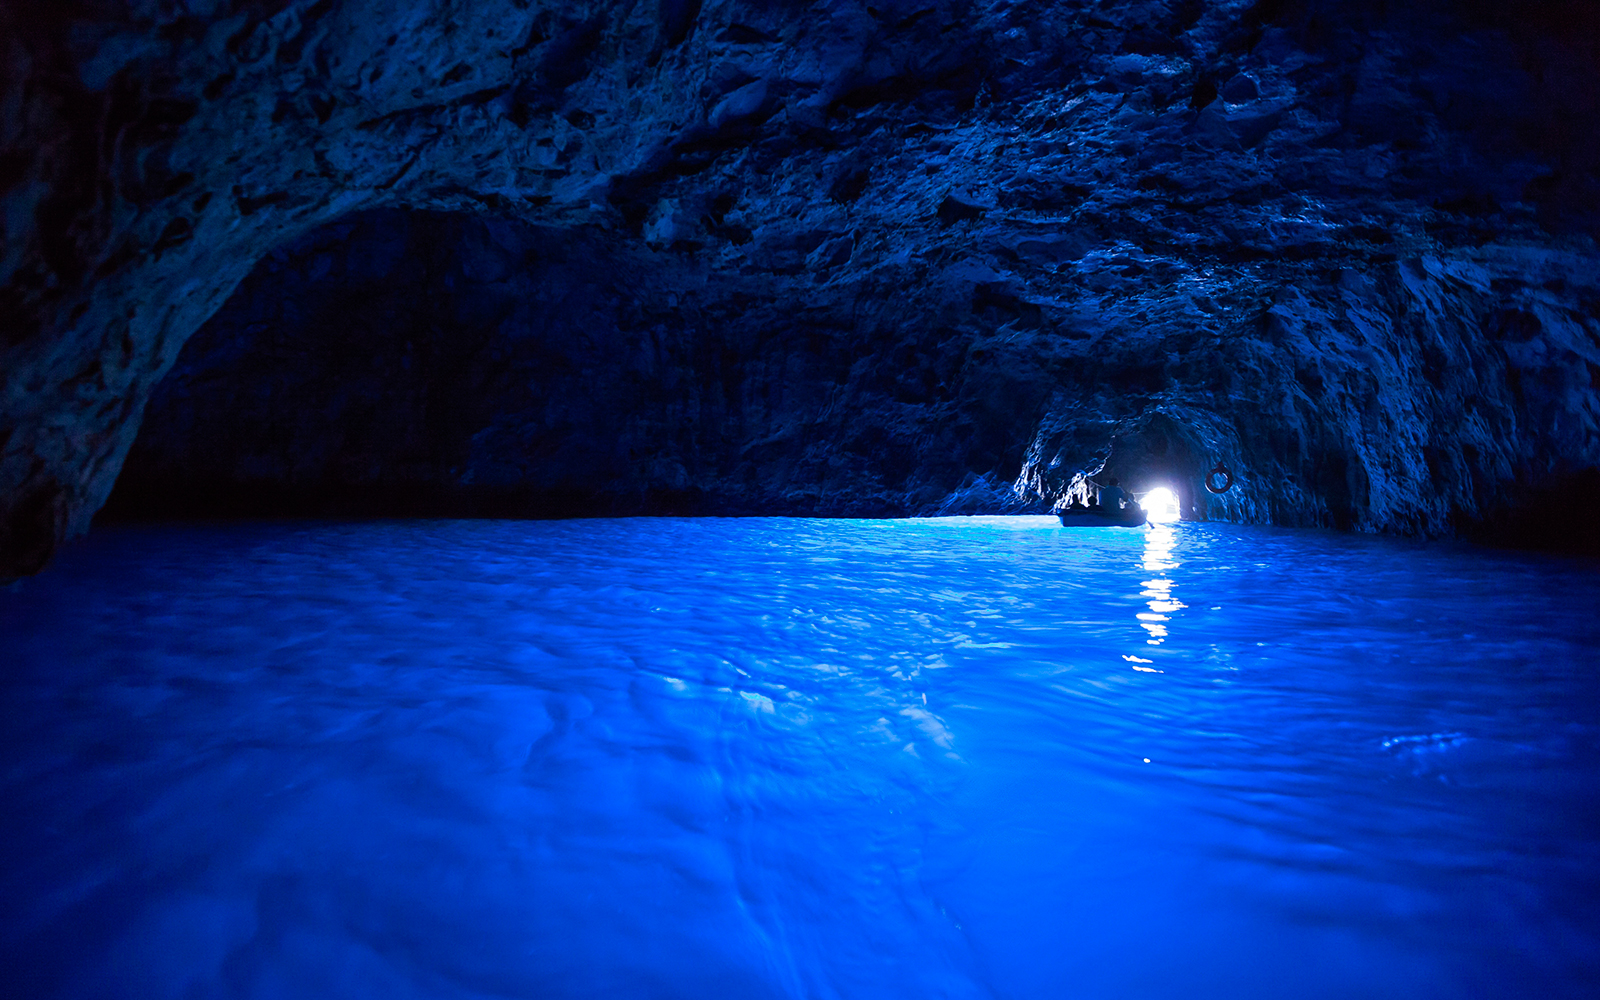 Nature's Most Spectacular Light Shows: Blue Grotto - Capri, Italy